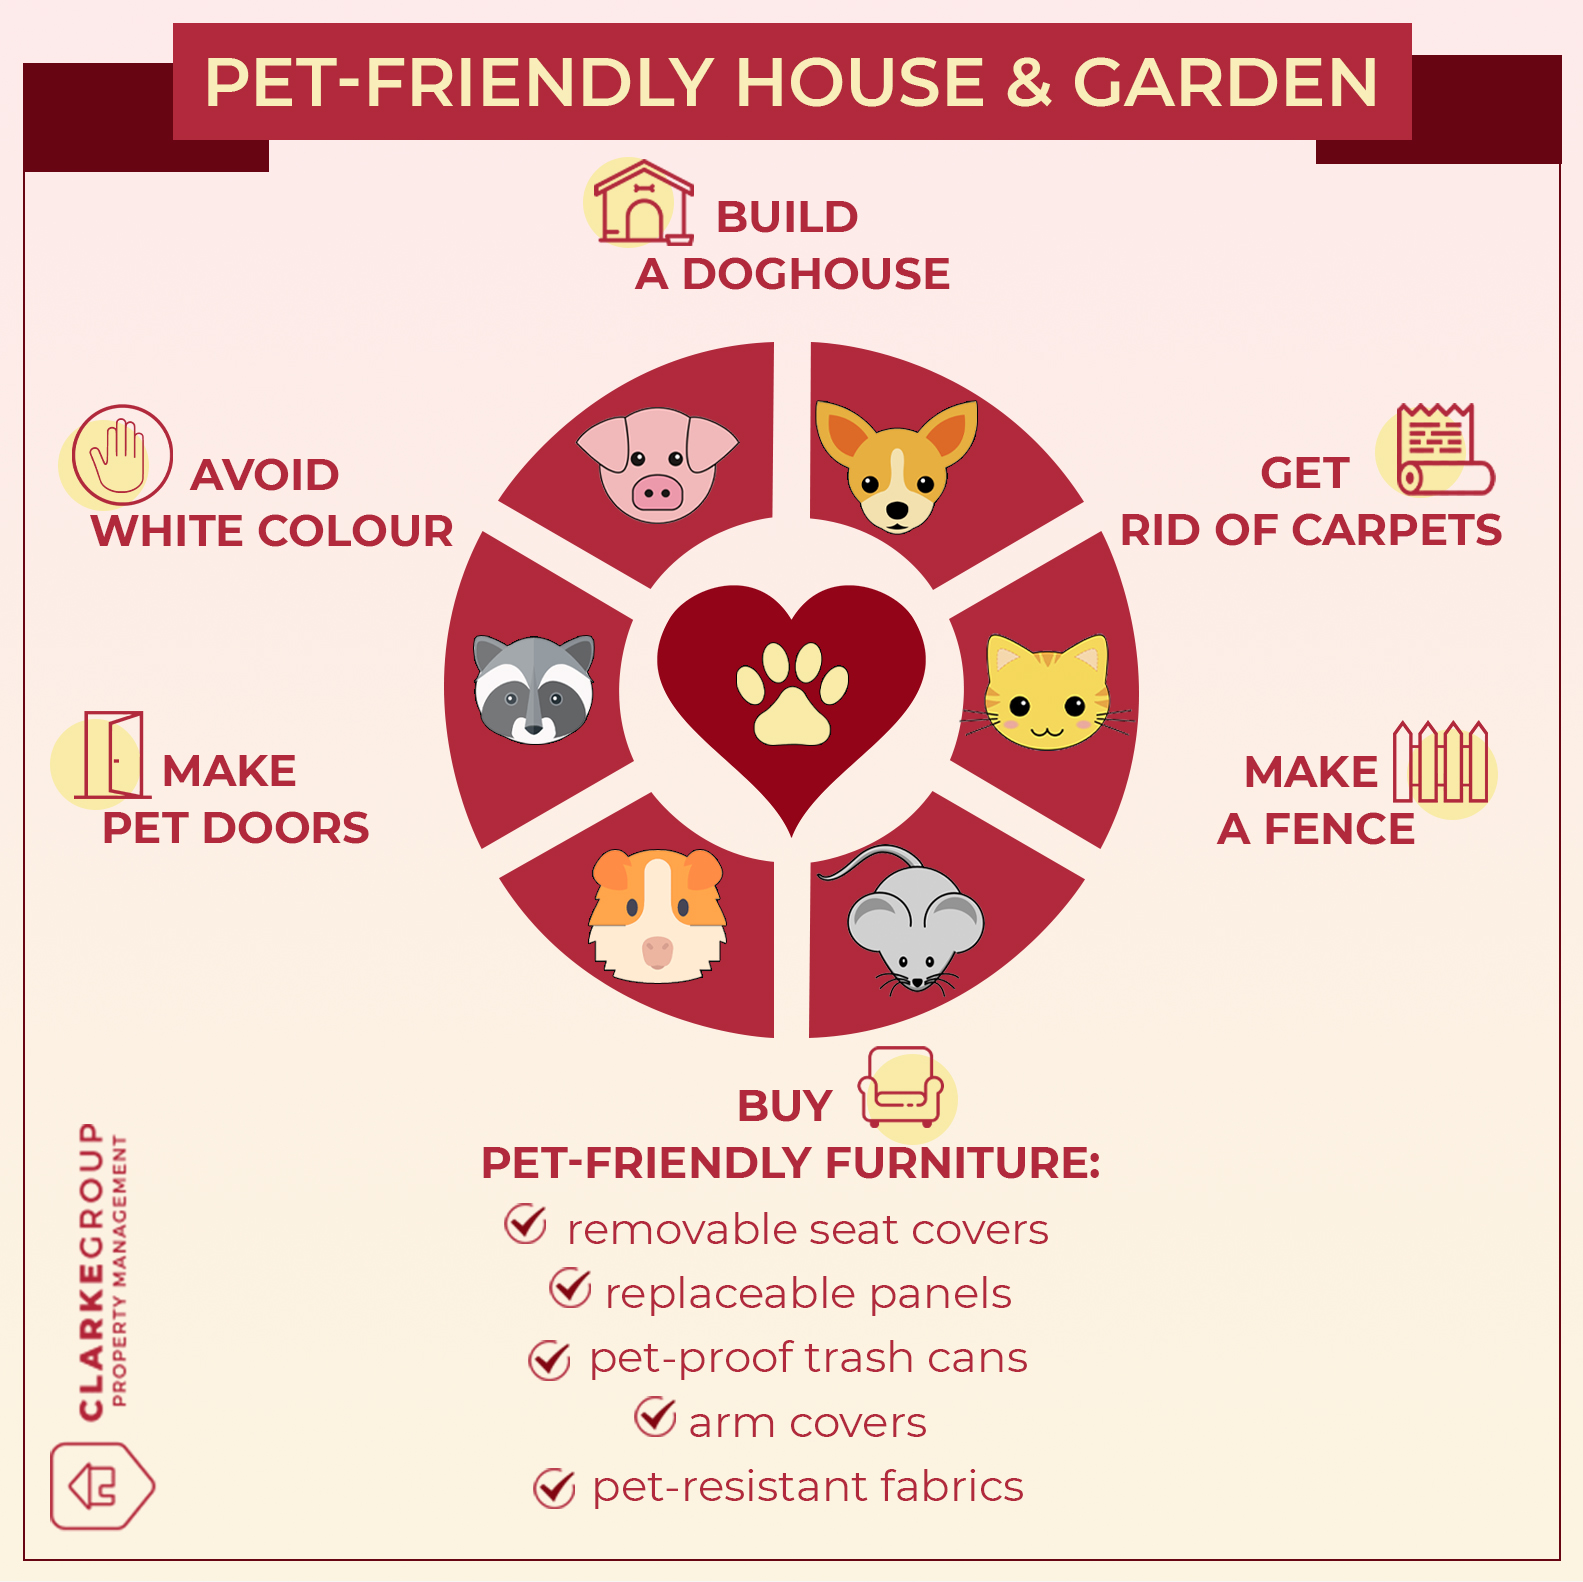 Infographic enlisting tips for pet-friendly Auckland landlords